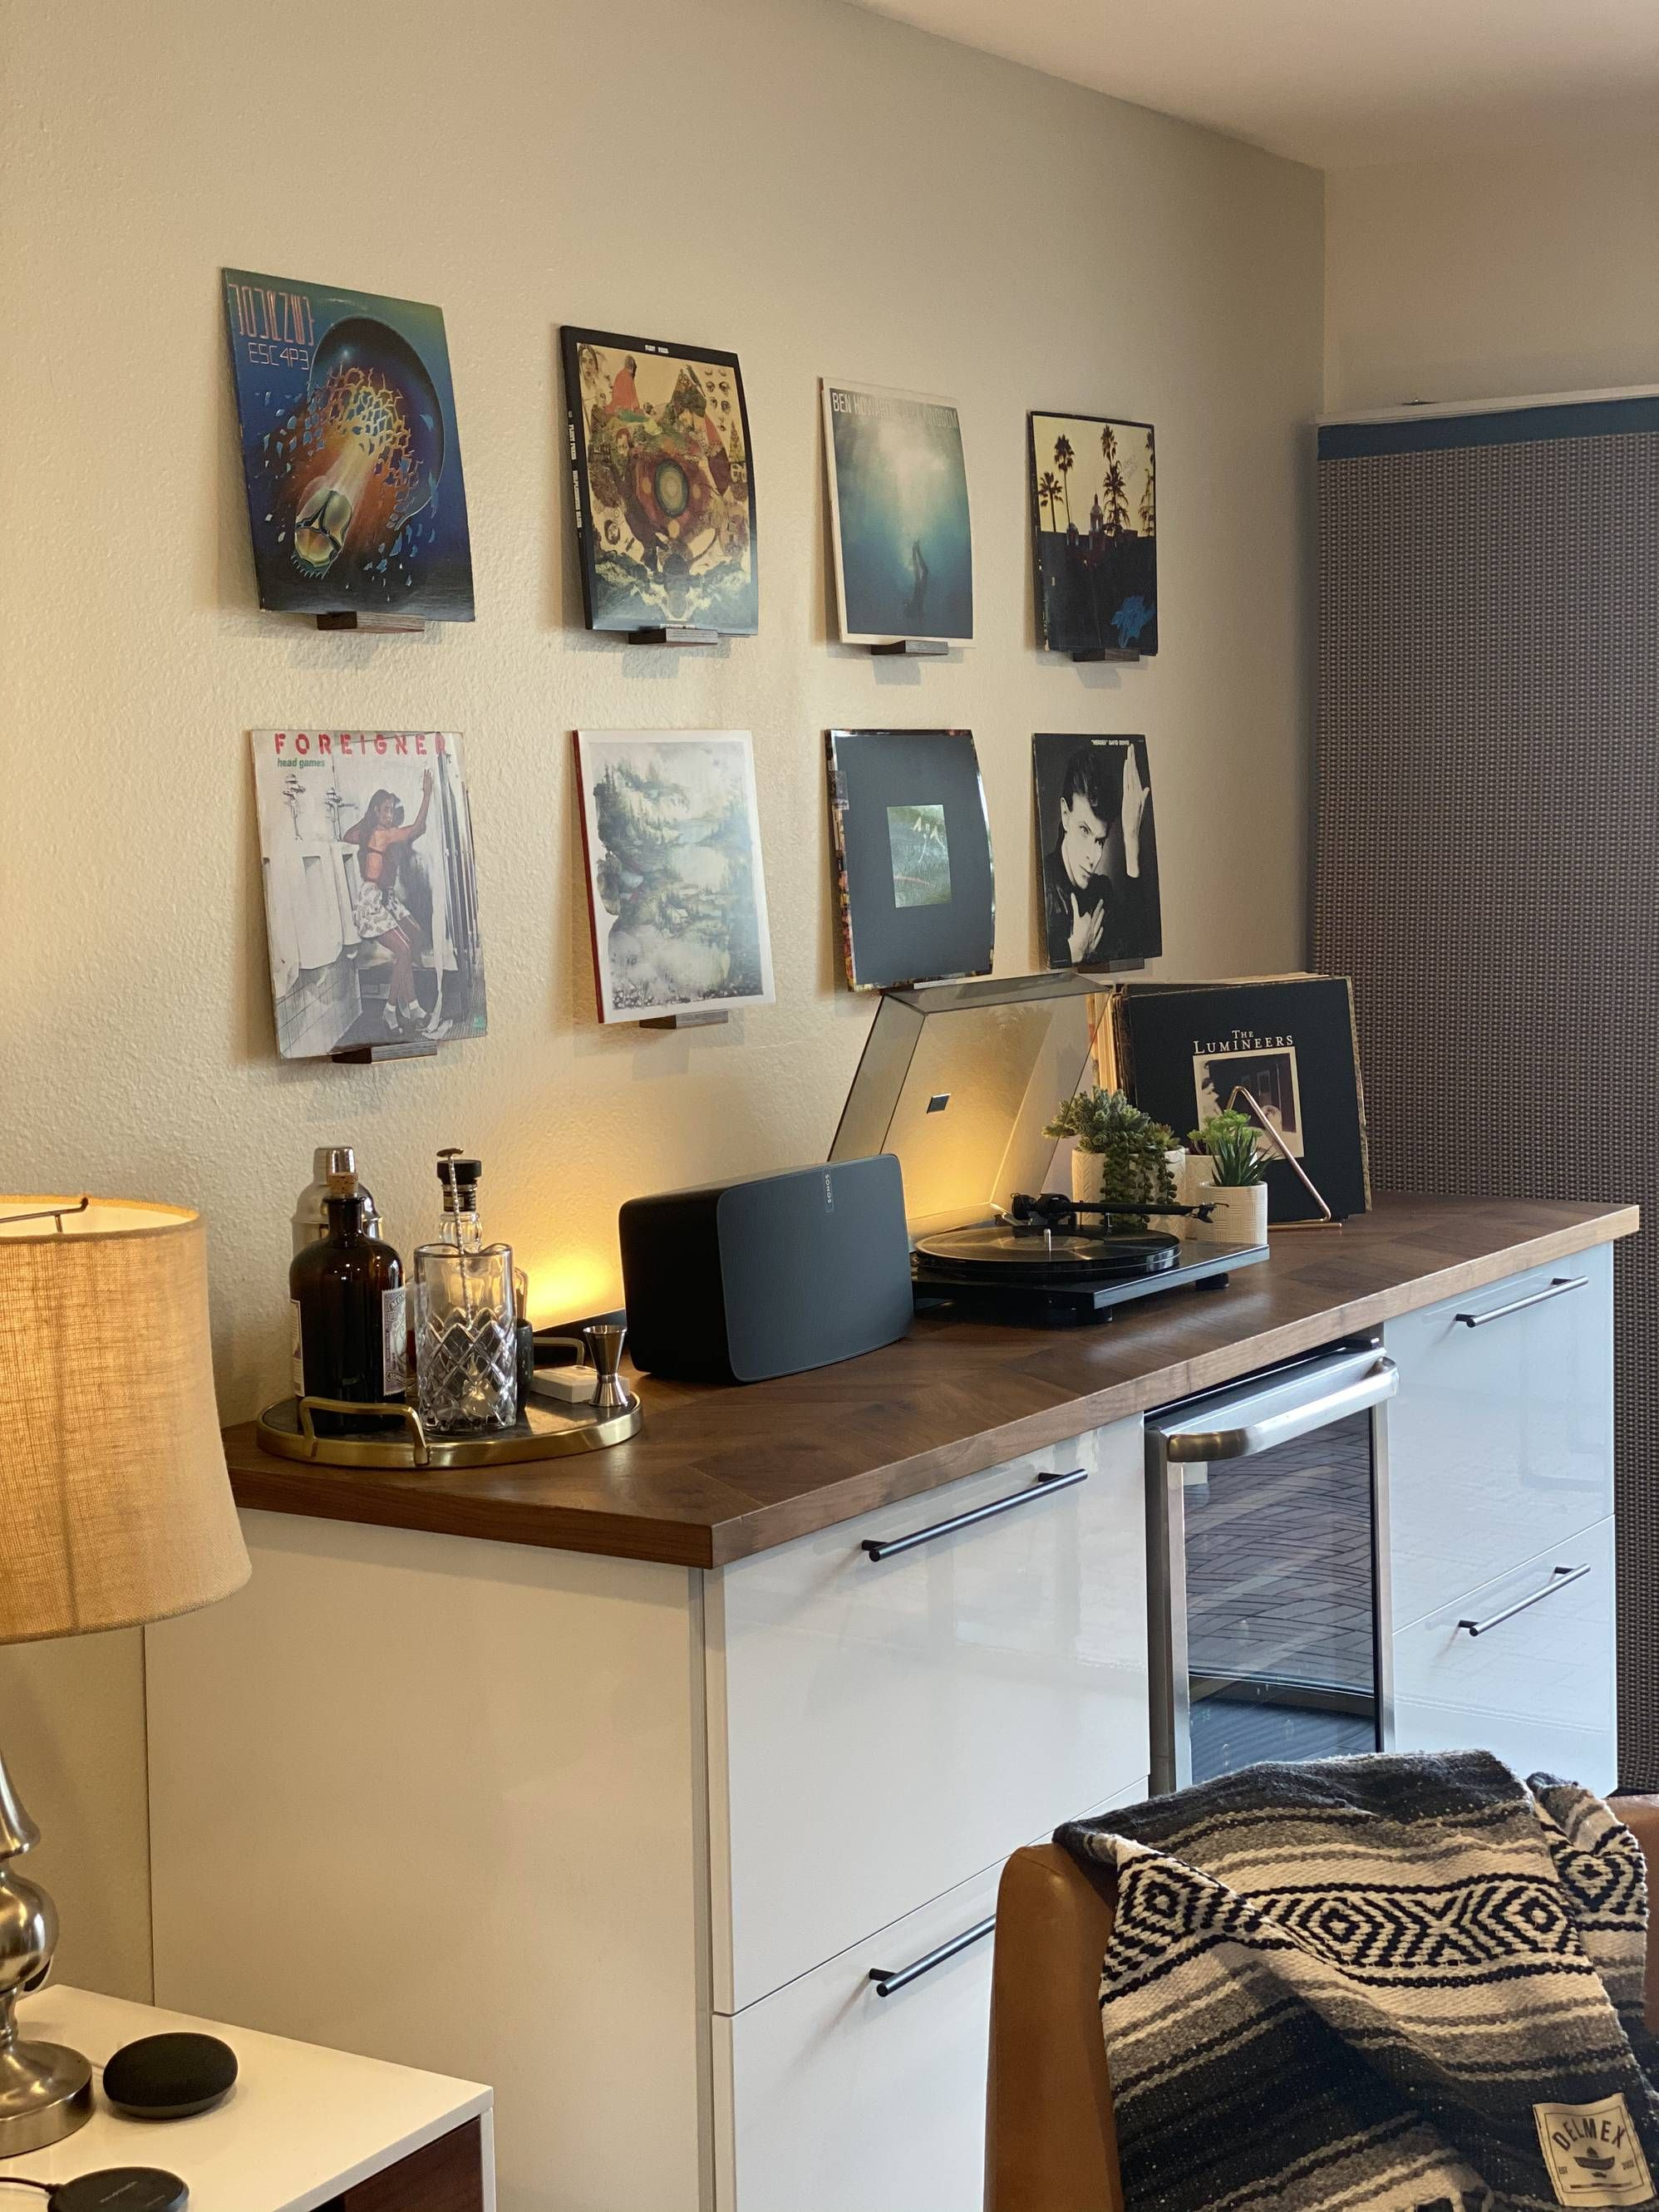 Bar I Built In My House With Ikea Kitchen Products Bonus Picture Of The Rest Of The Room Interior Living Space Design Concep Man Room Ikea Kitchen Interior